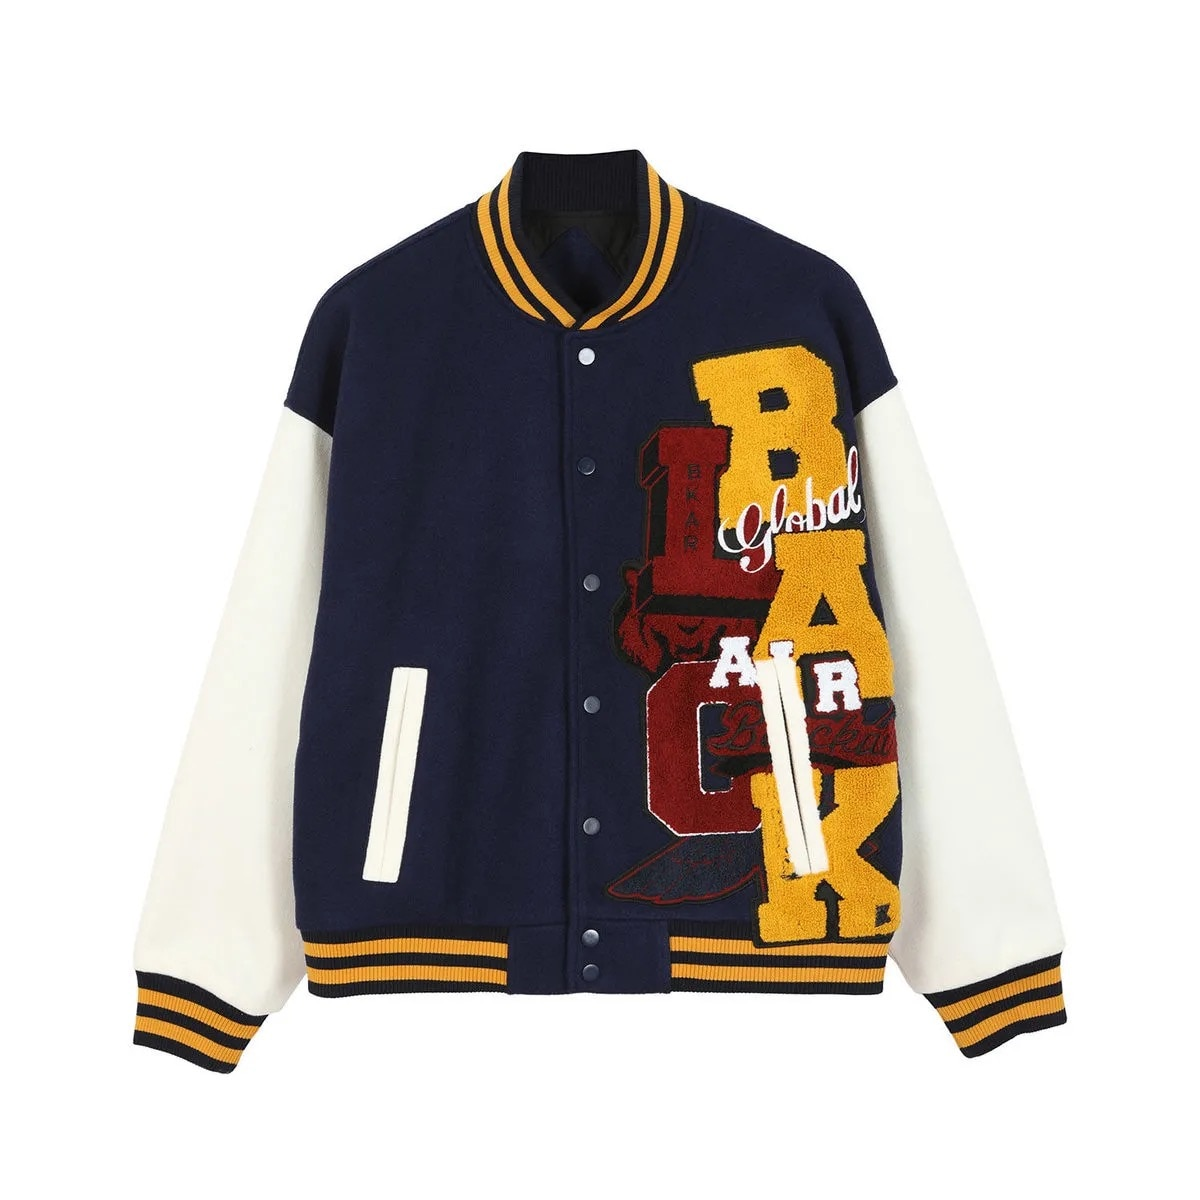 2021 Hip-hop,Letterman jacket,Patch block jacket, Men's jacket, short jacket, Men's and Momen's baseball jacket men jacket jacket rodier jacket